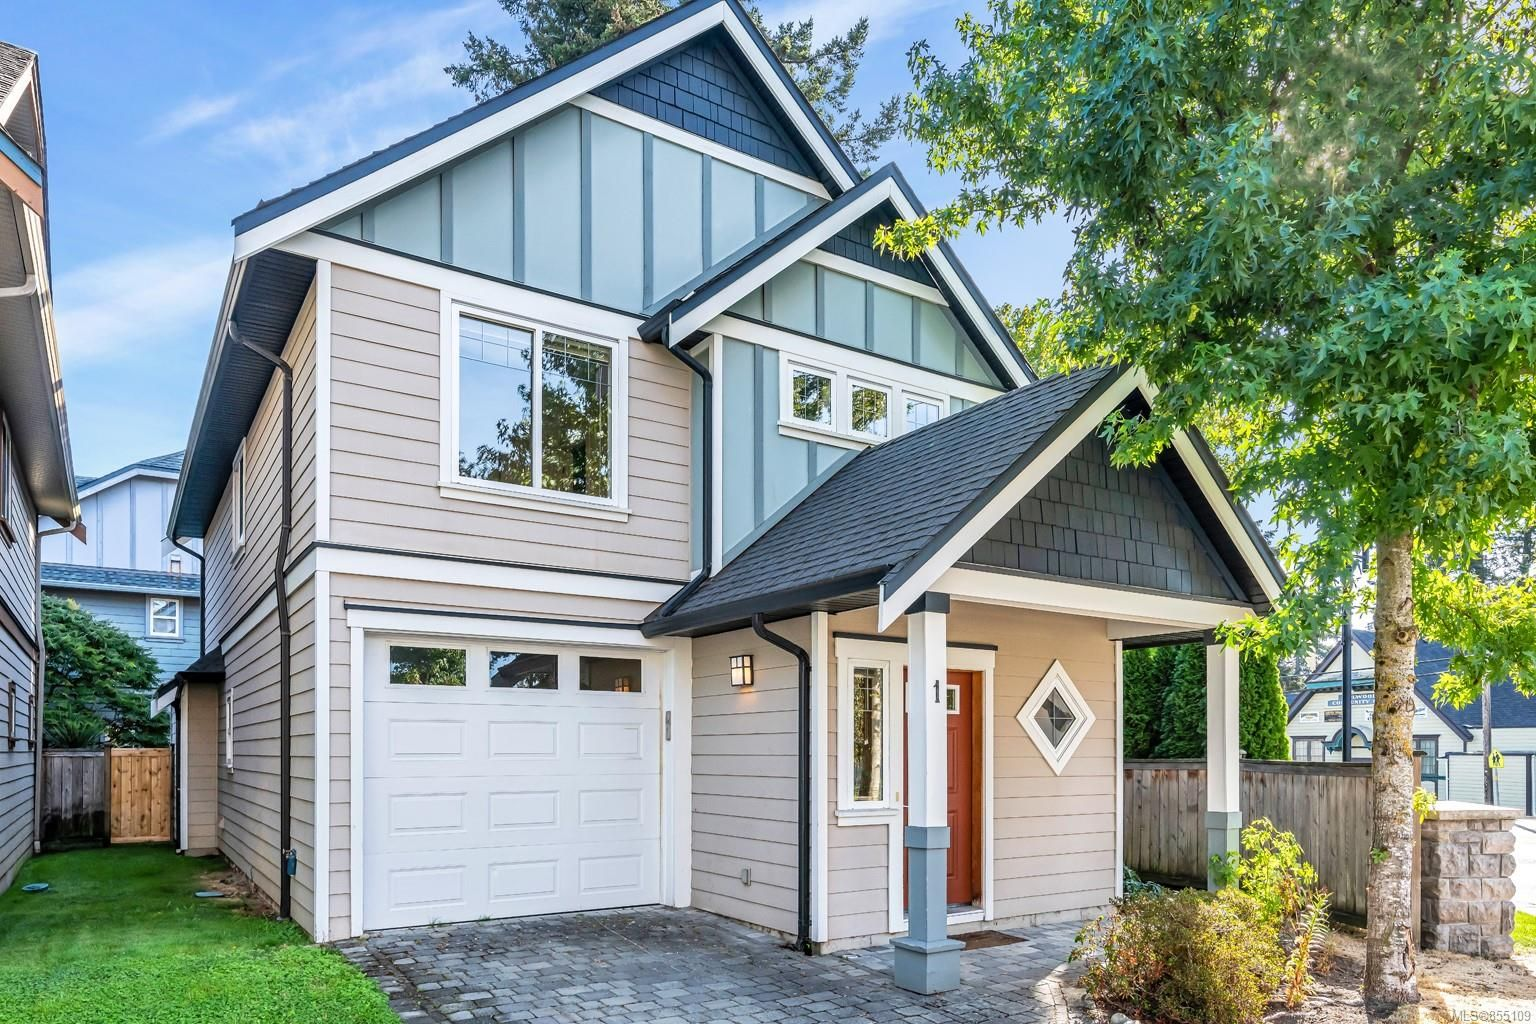 Main Photo: 1 2216 Sooke Rd in : Co Hatley Park Row/Townhouse for sale (Colwood)  : MLS®# 855109